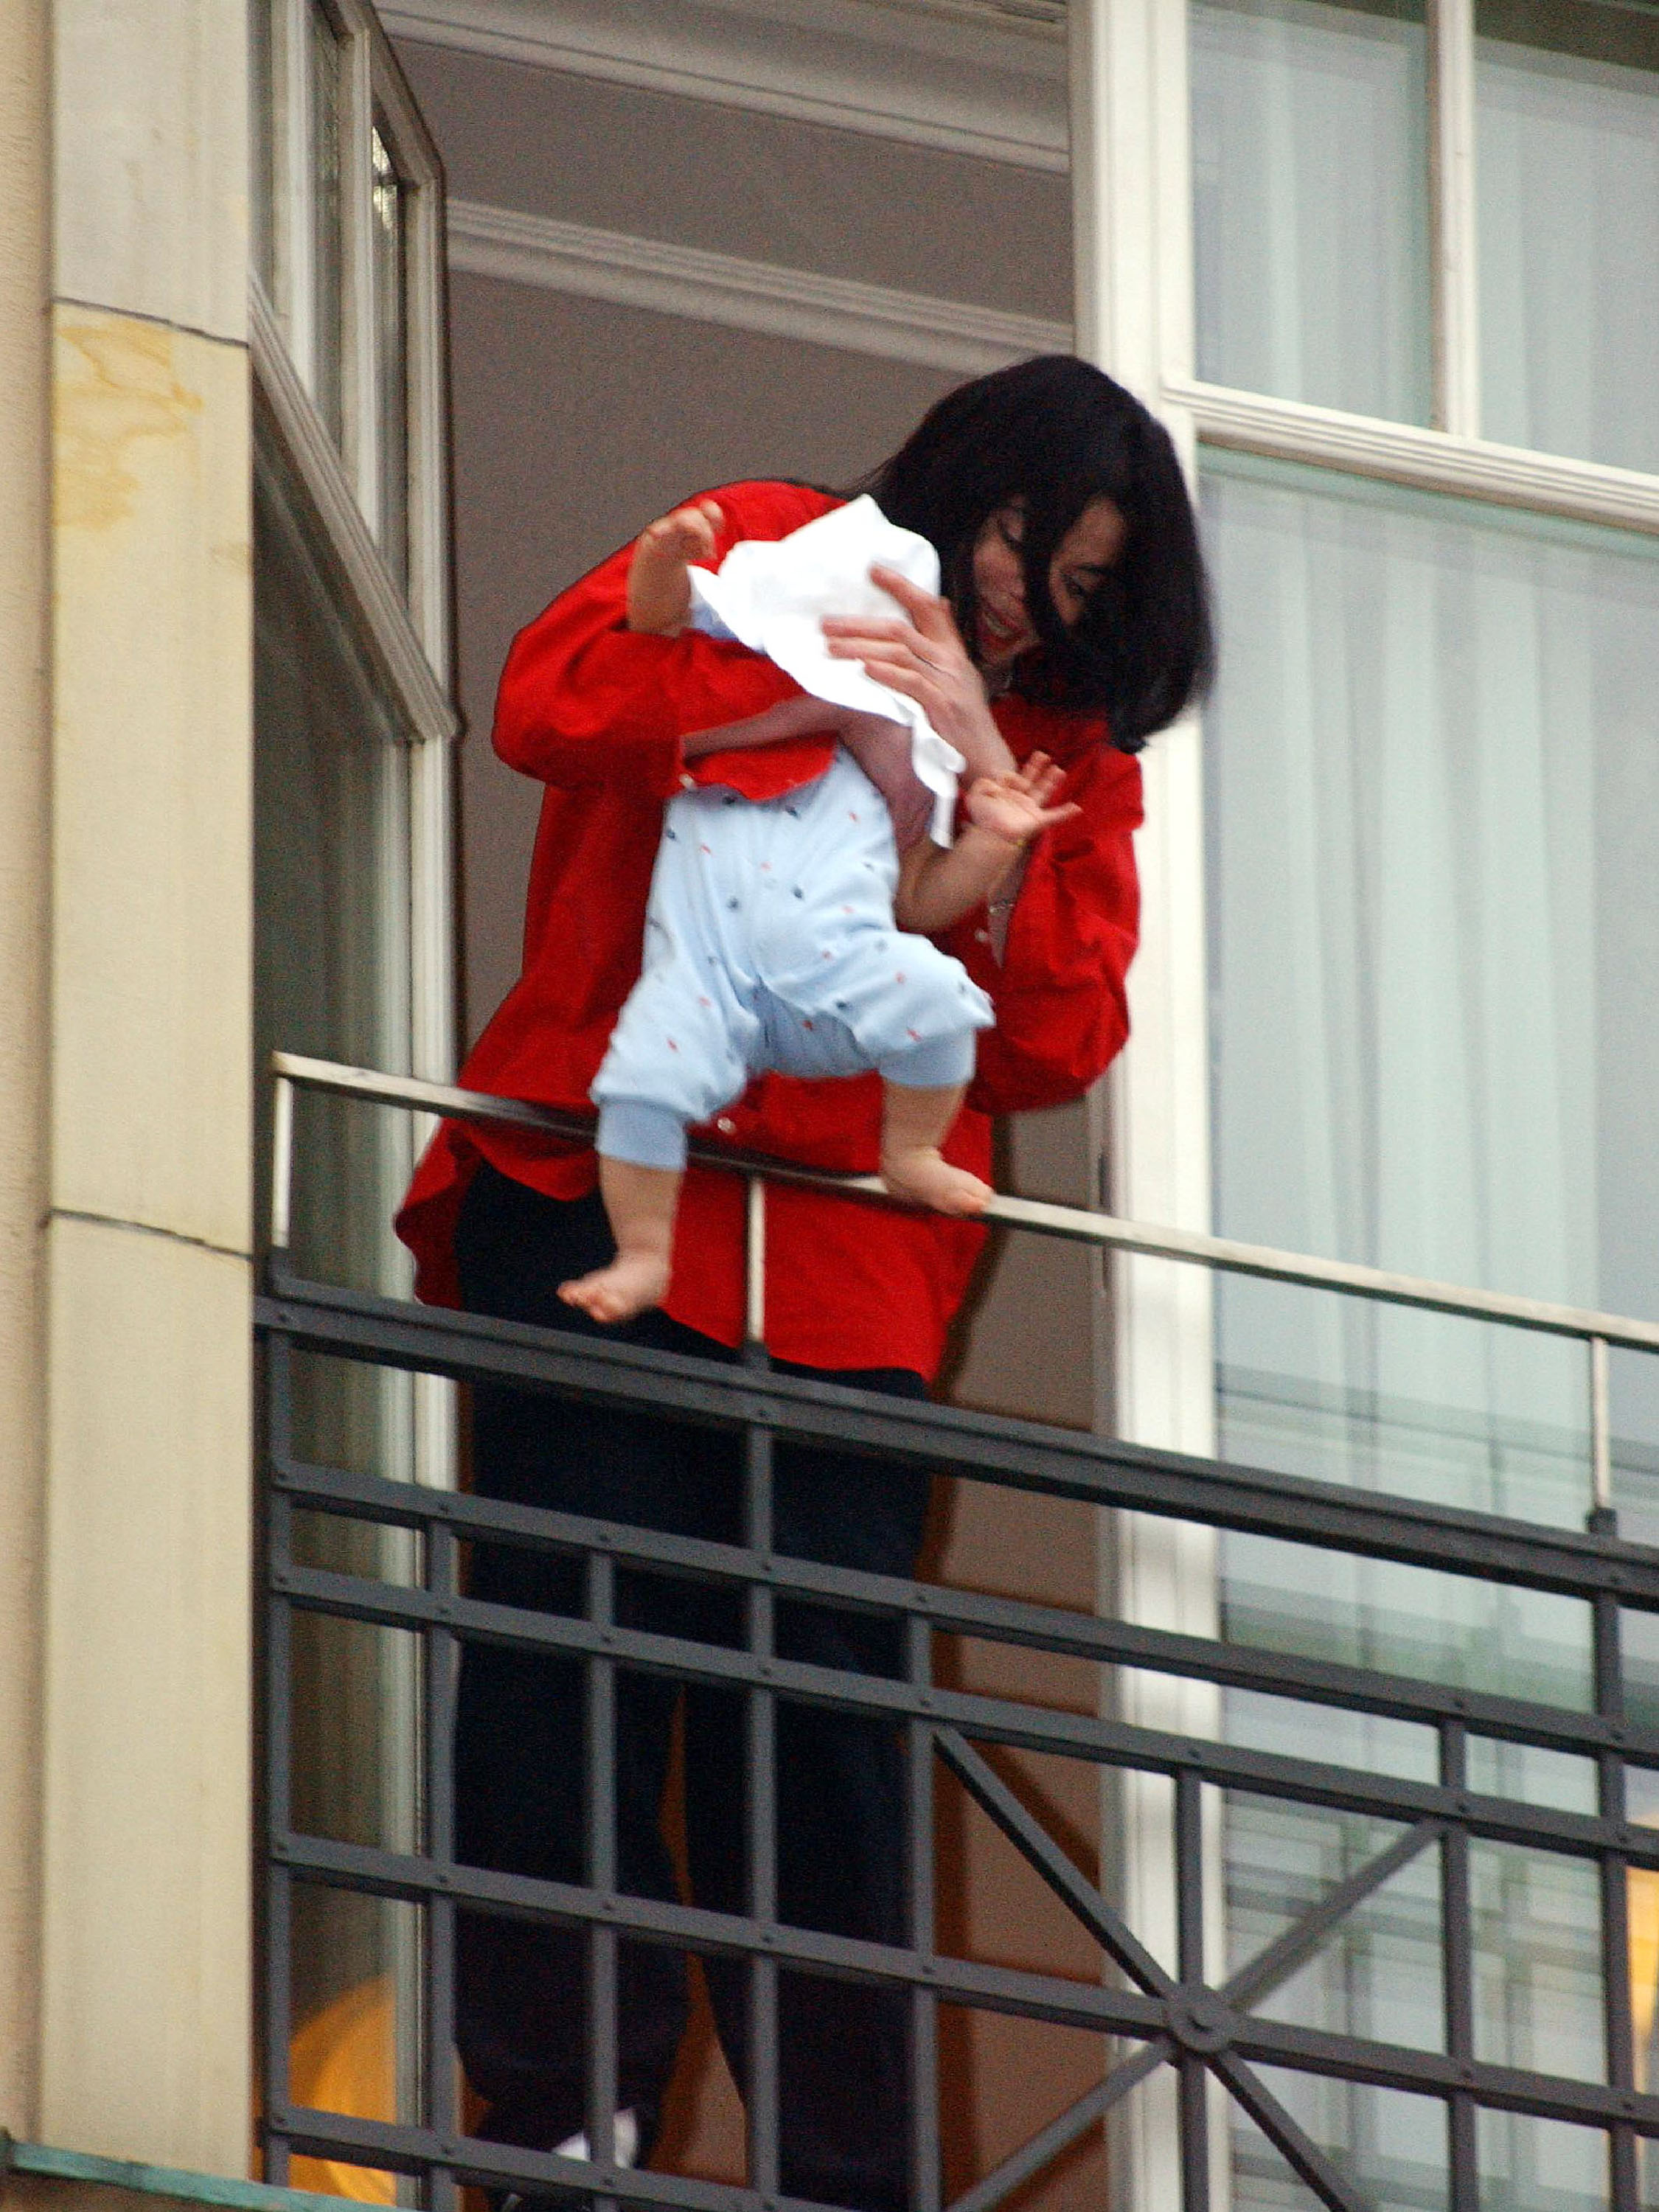 Singer Michael Jackson holds his eight-month-old son Prince Michael II over the balcony of the Adlon Hotel November 19, 2002 in Berlin, Germany. (Photo by Olaf Selchow/Getty Images)